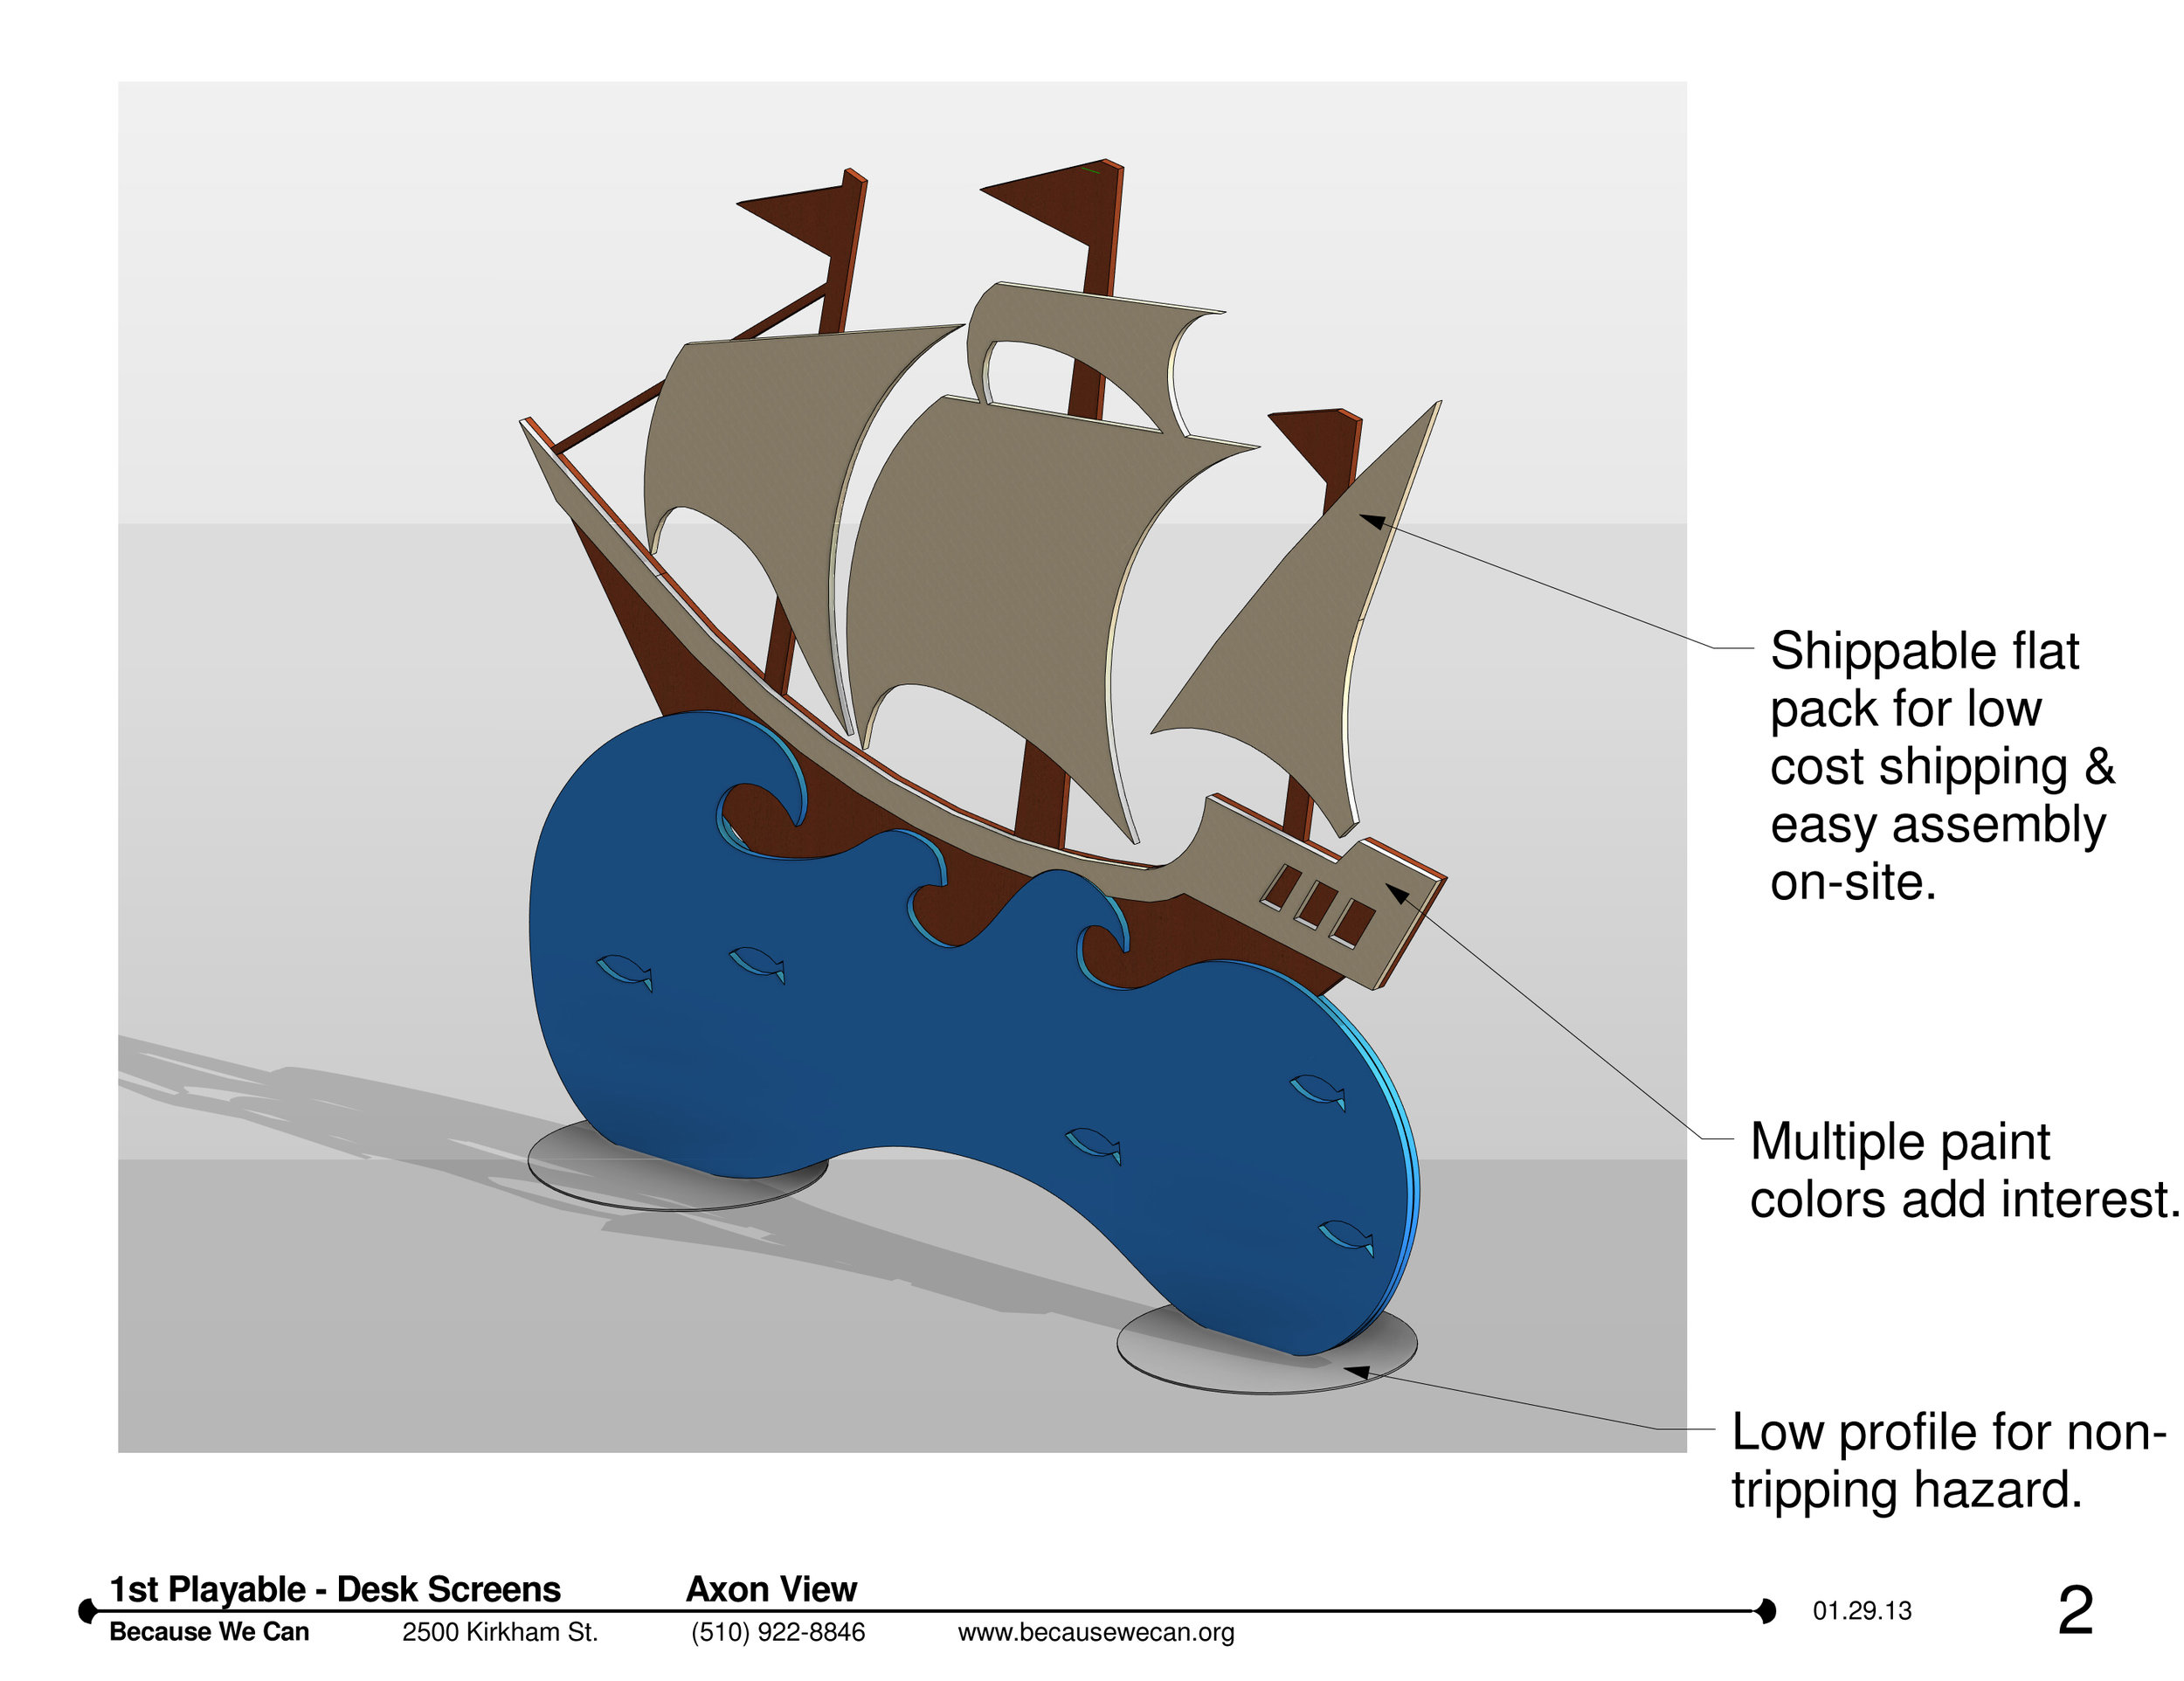 The design drawings for the ship dividers to relay the final concepts to the client.